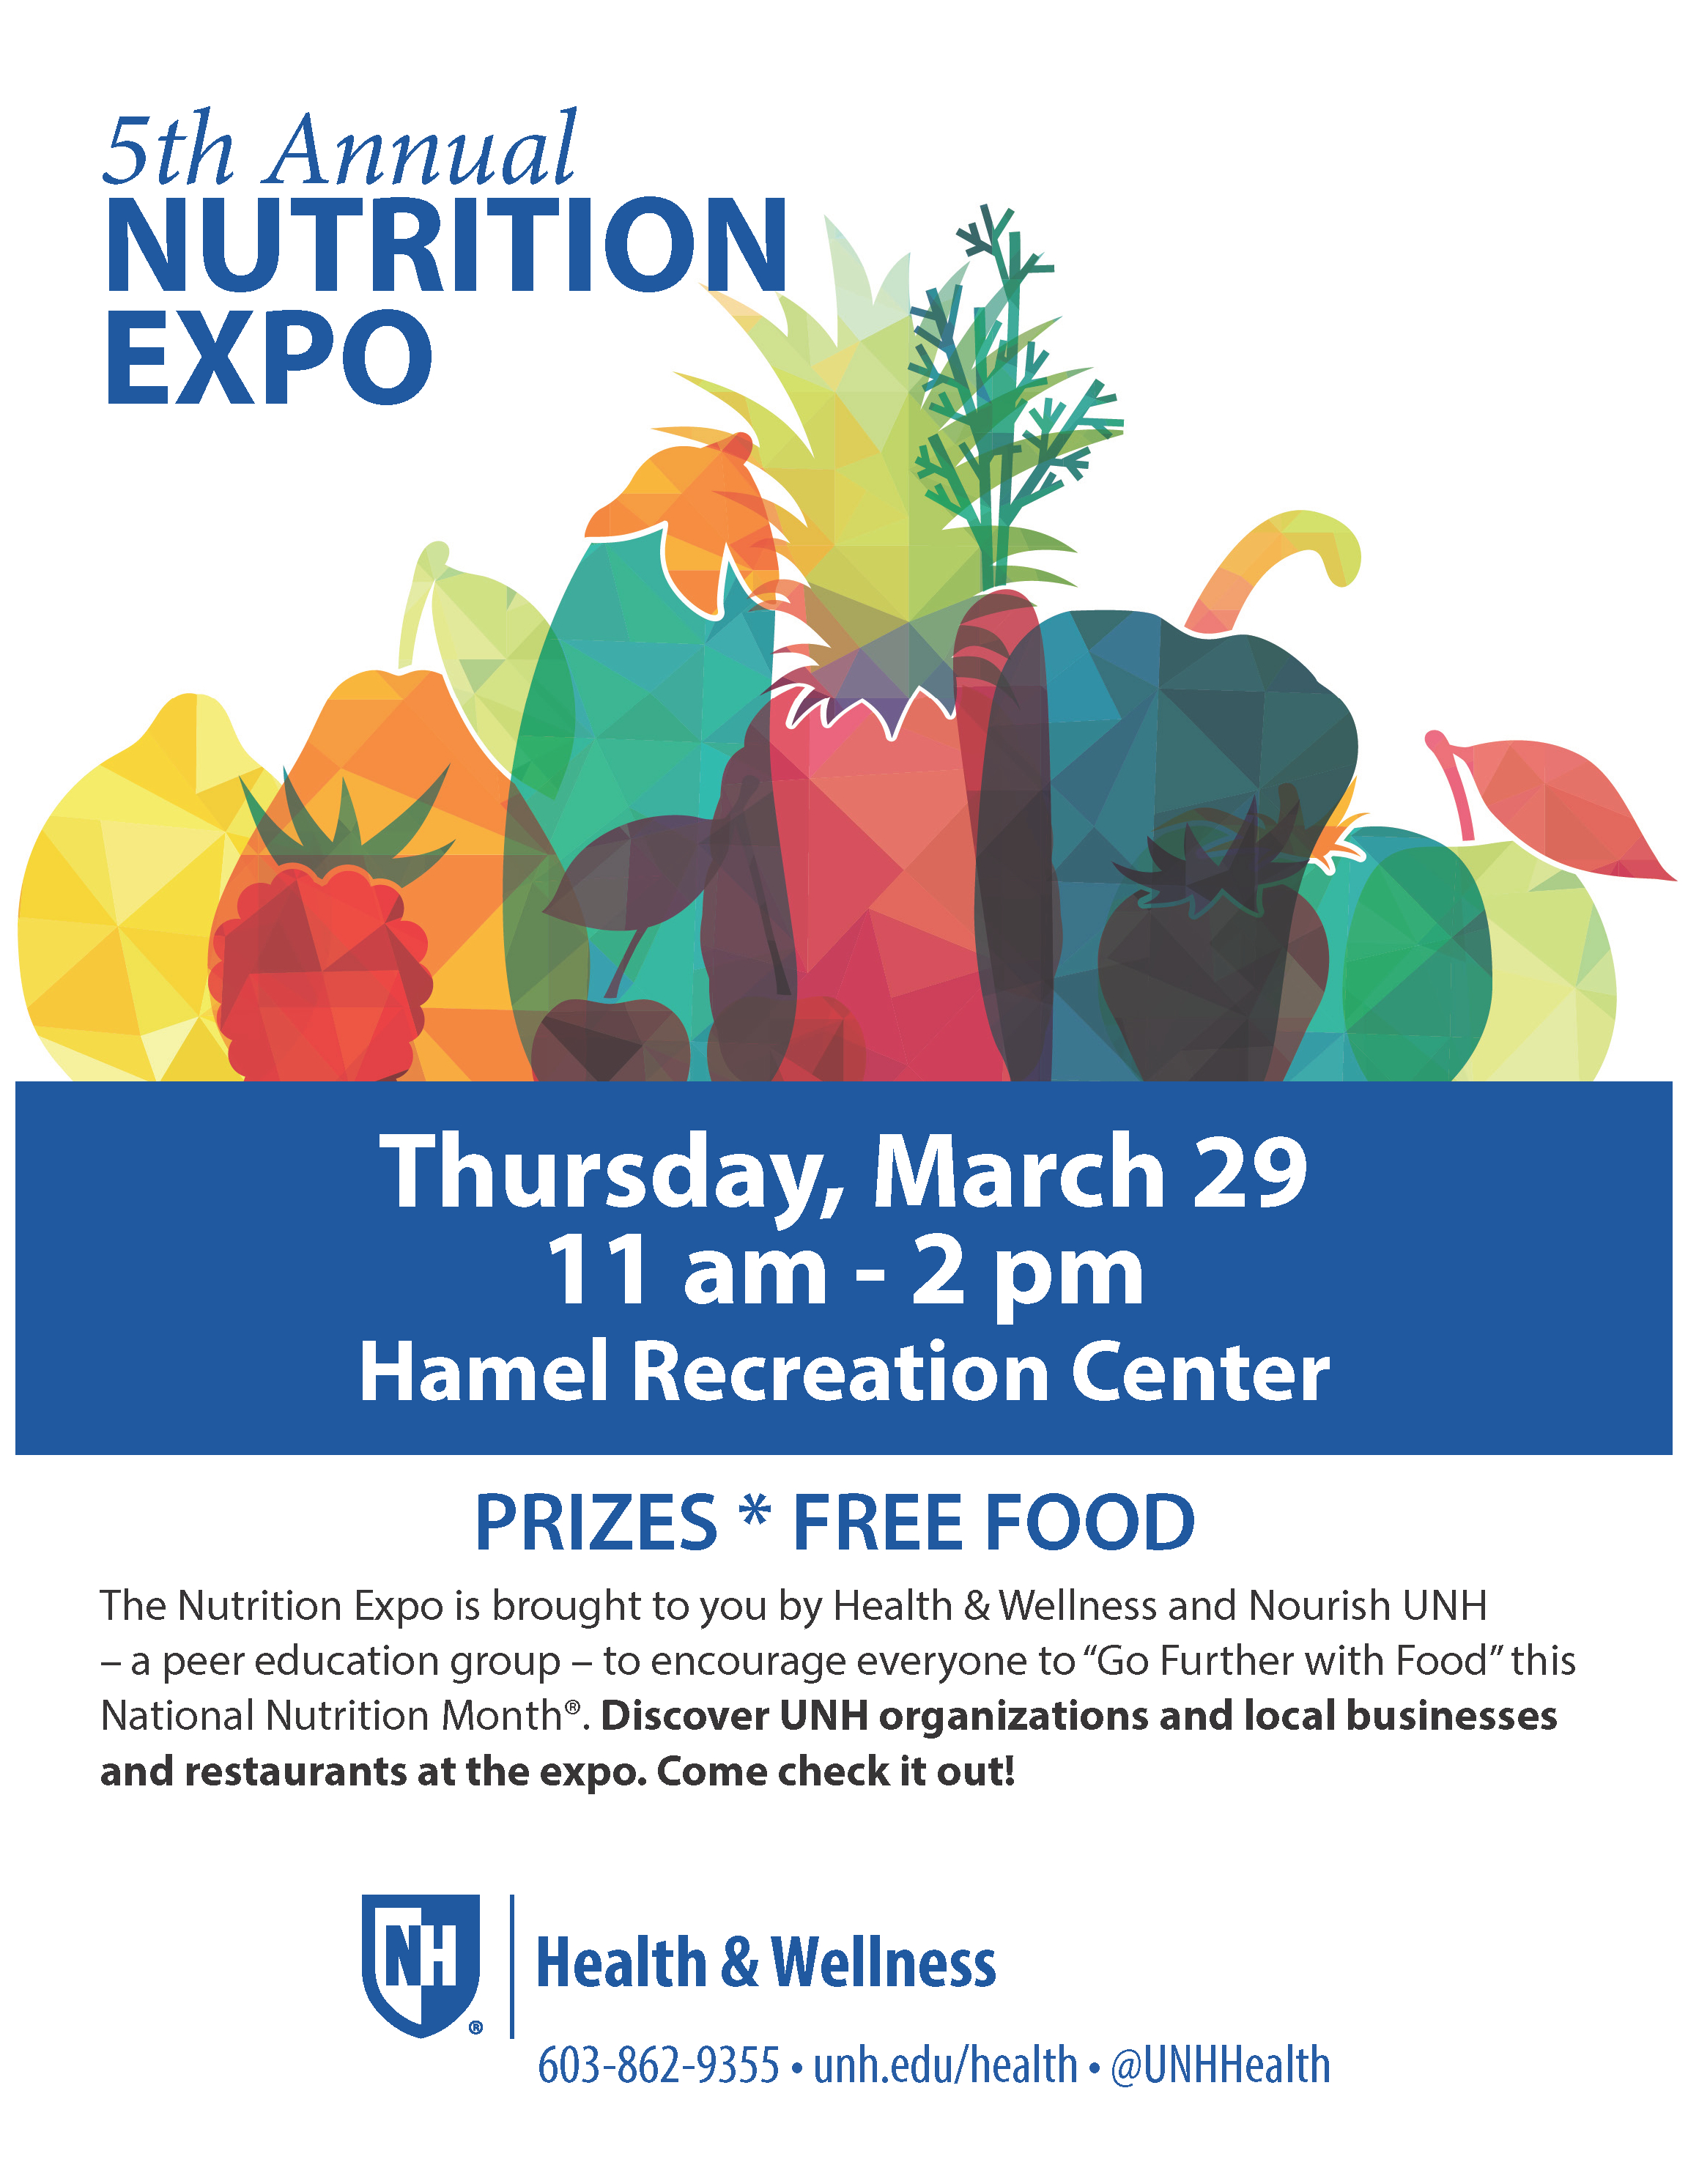 Information regarding Nutrition Expo is as follows Create Your Own Tag: is #BeWellUNH and Start date is March 02 2018 and End Date is March 31 2018 and File is Browse and Affiliation is Department and Group Name is Health & Wellness and File Name is Nutrition-Expo_comp.jpg and Name is kathleen grace-bishop and Email is kathleen.grace-bishop@unh.edu and Name of Ad/Event is Nutrition Expo and Panel is Side and